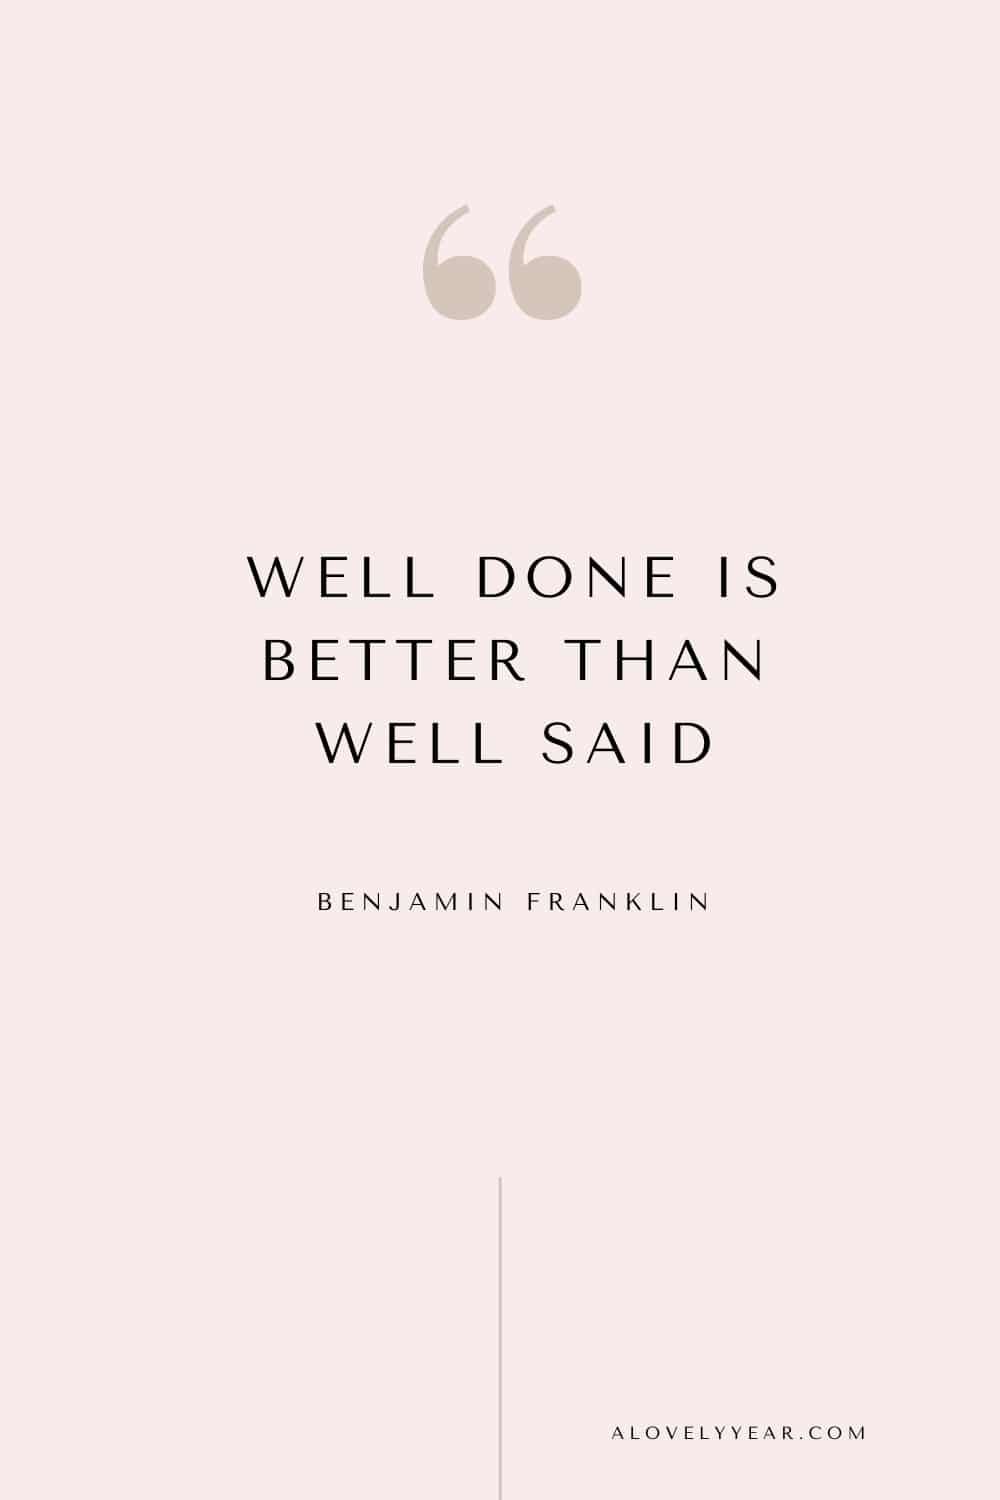 Get things done quote - Well done is better than well said. - Benjamin Franklin